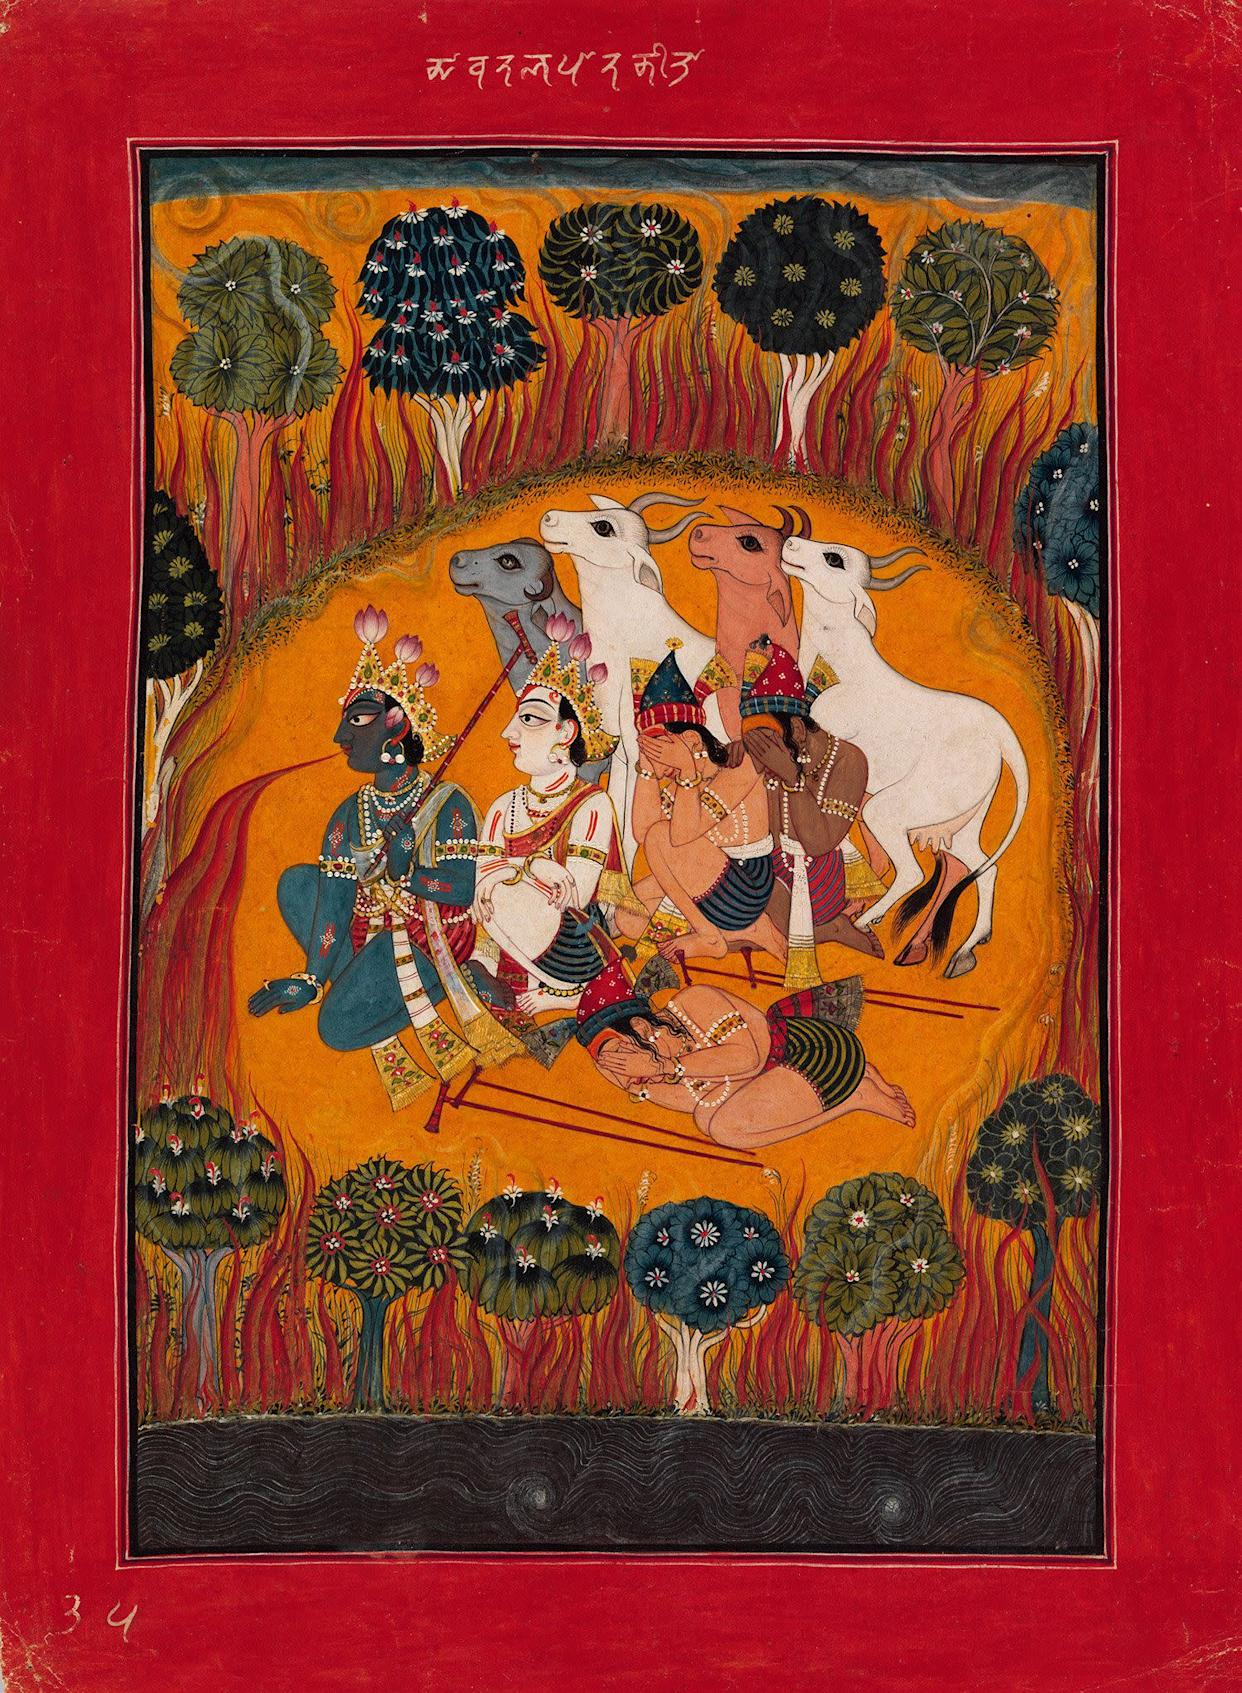 """""""Krishna Swallows the Forest Fire.""""Attributed to the Master at the Court of Mankot(active ca. 1690–1730).Illustrated folio from the dispersed """"Upright""""Bhagavata Purana (The Ancient Story of God)Punjab Hills, kingdom of Mankot, early 18th century.Opaque watercolor, gold, and silver (now tarnished)on paper; wide red border with white and black innerrules; painting 9 x 6 3/16 in. Promised Gift of the Kronos Collections, 2015"""